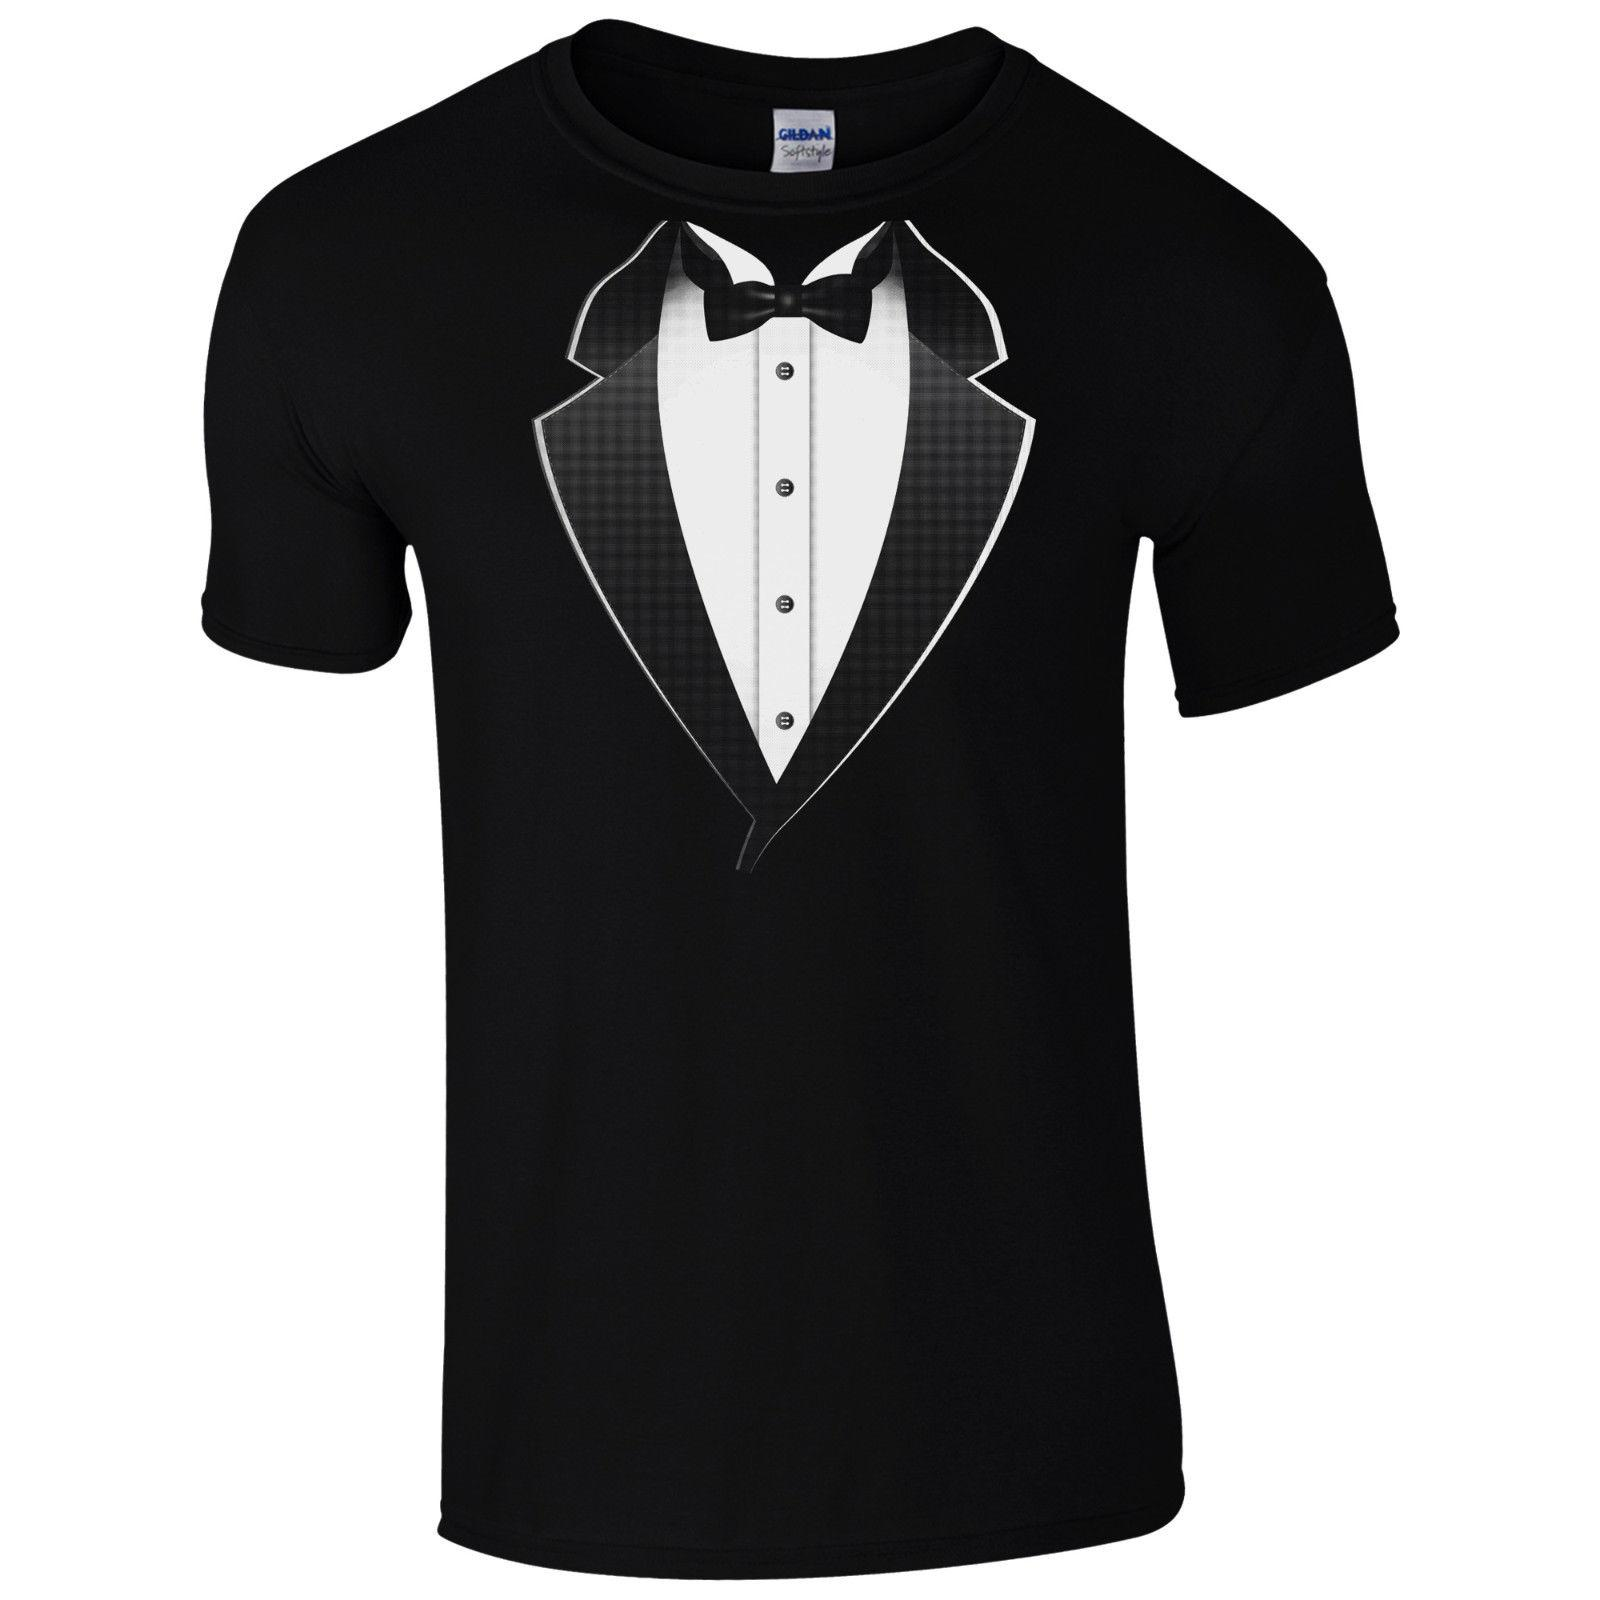 4a4a83320 Tuxedo Fancy Dress T Shirt Funny Stag Do Party Tux Smart Suit Gift Mens Top  Cool Casual Pride T Shirt Men T Shirt Slogans Dirty T Shirts From  Designtshirts, ...